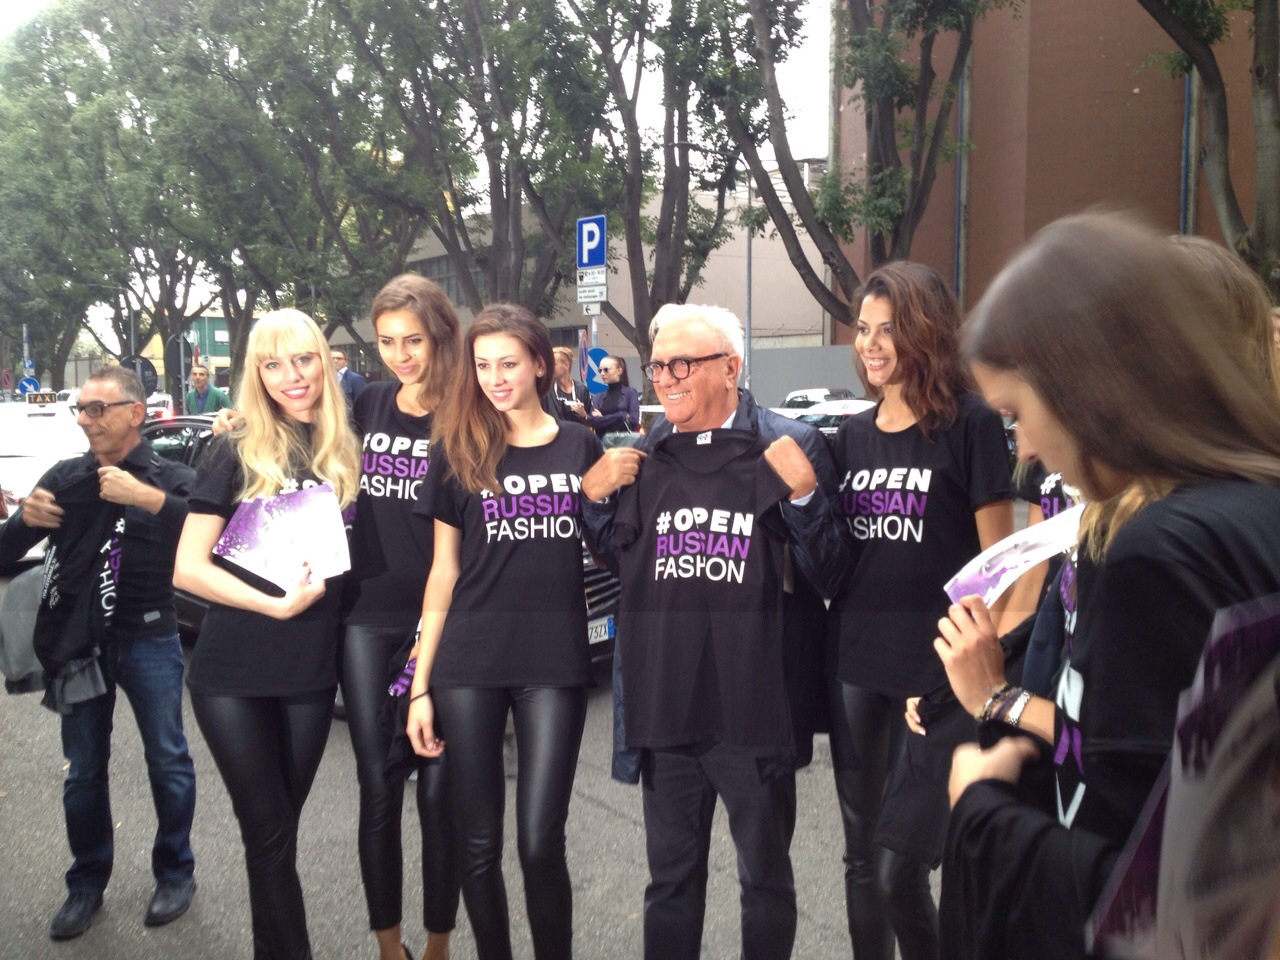 #OpenRussianFashion flashmob Super Milan Italy